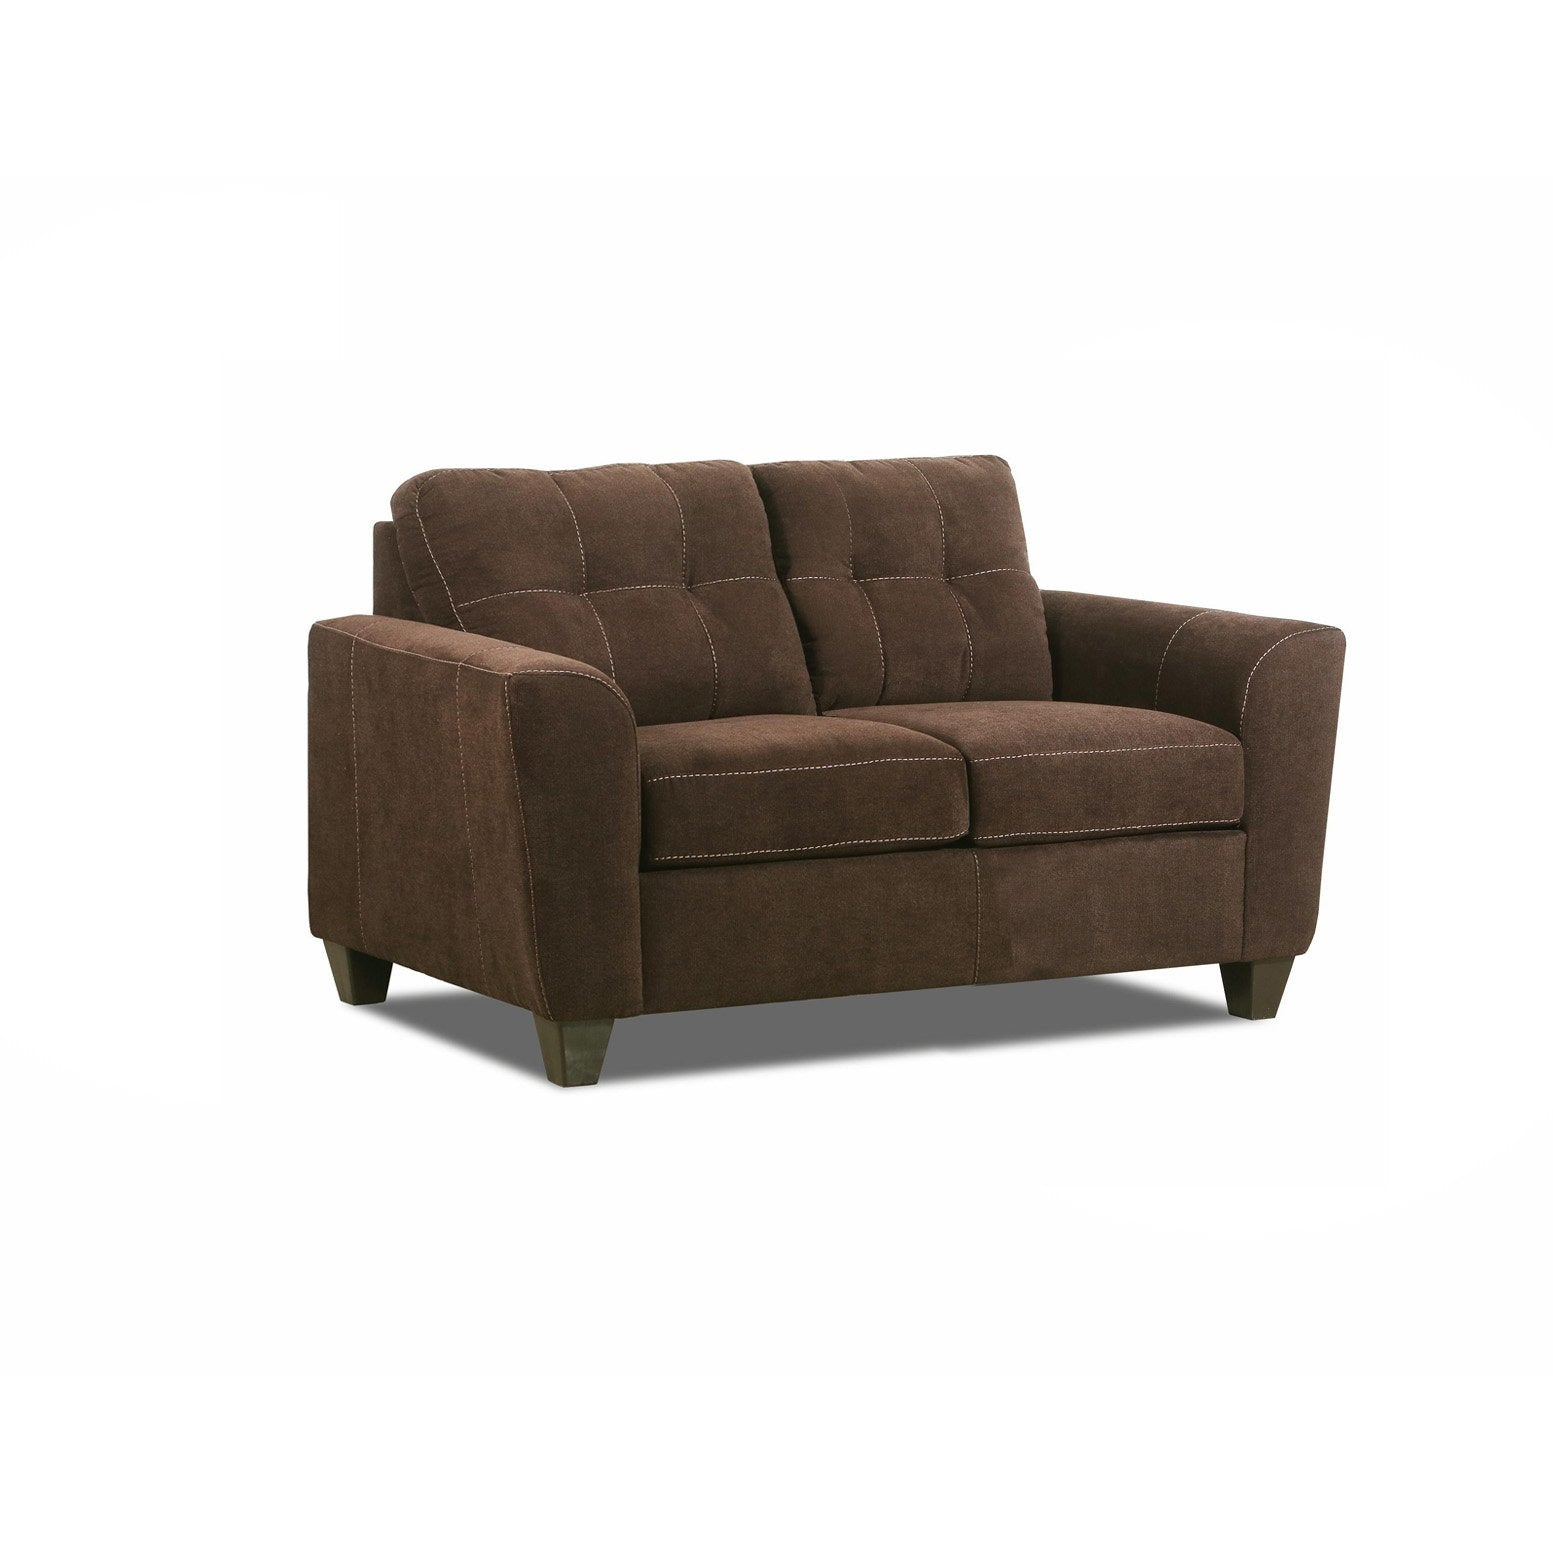 Farrar Loveseat